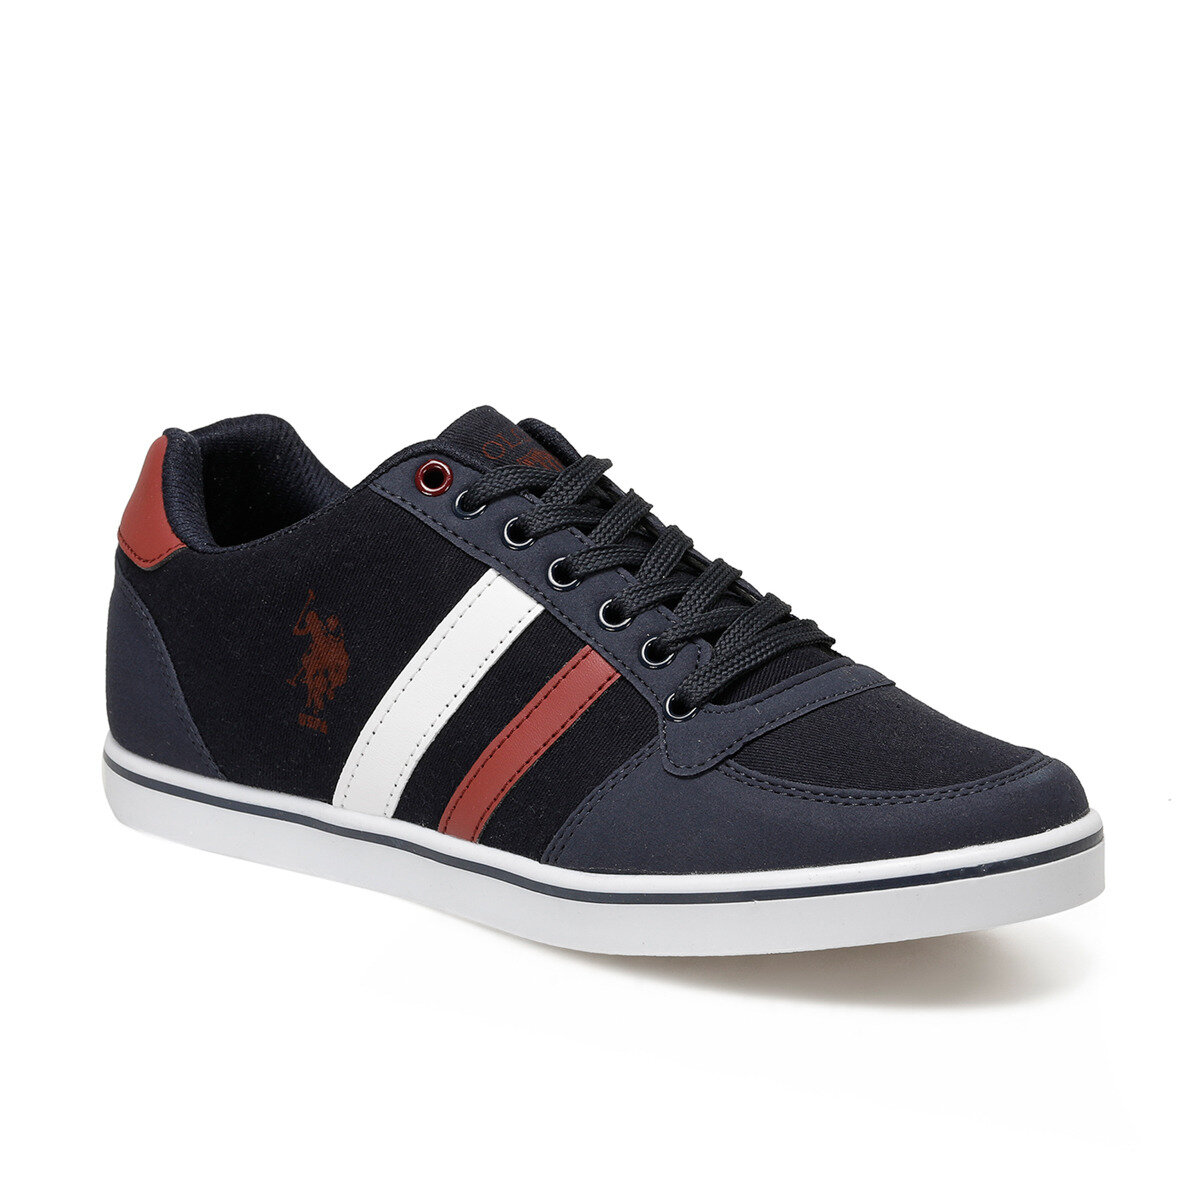 FLO Navy Blue Men Sneaker Shoes For Men Summer Men Sneakers Lace Up Low Top Footwear Breathable Sport Trainers Zapatillas Hombre U.S. POLO ASSN. REGGIE